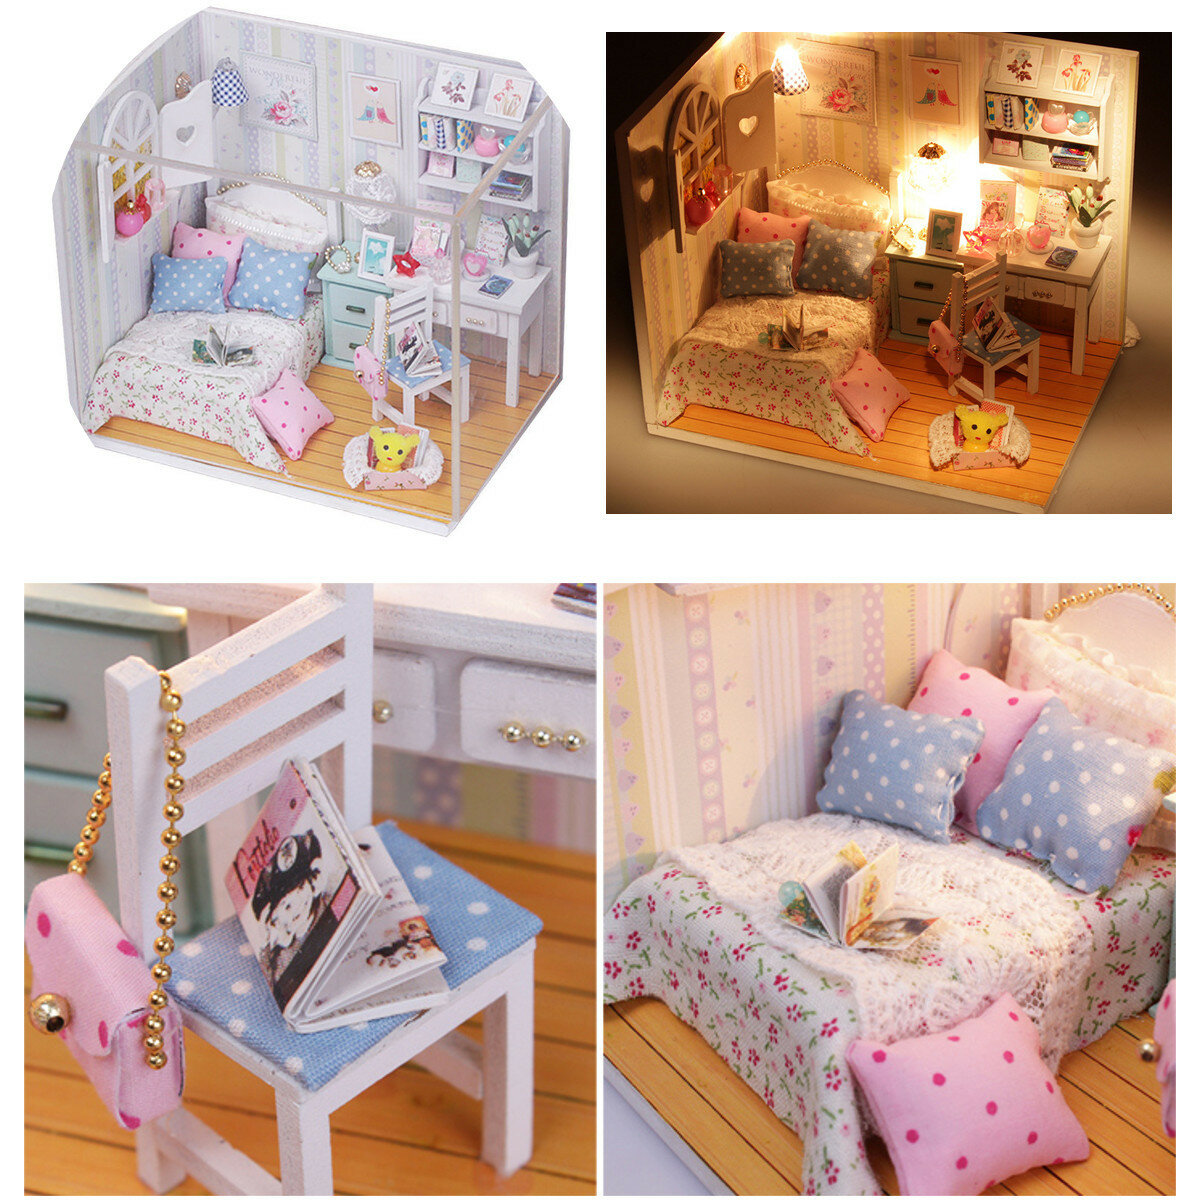 Hoomeda Diy Wood Dollhouse Miniature With Led Furniture Cover Doll Wiring A Shoebox House Room